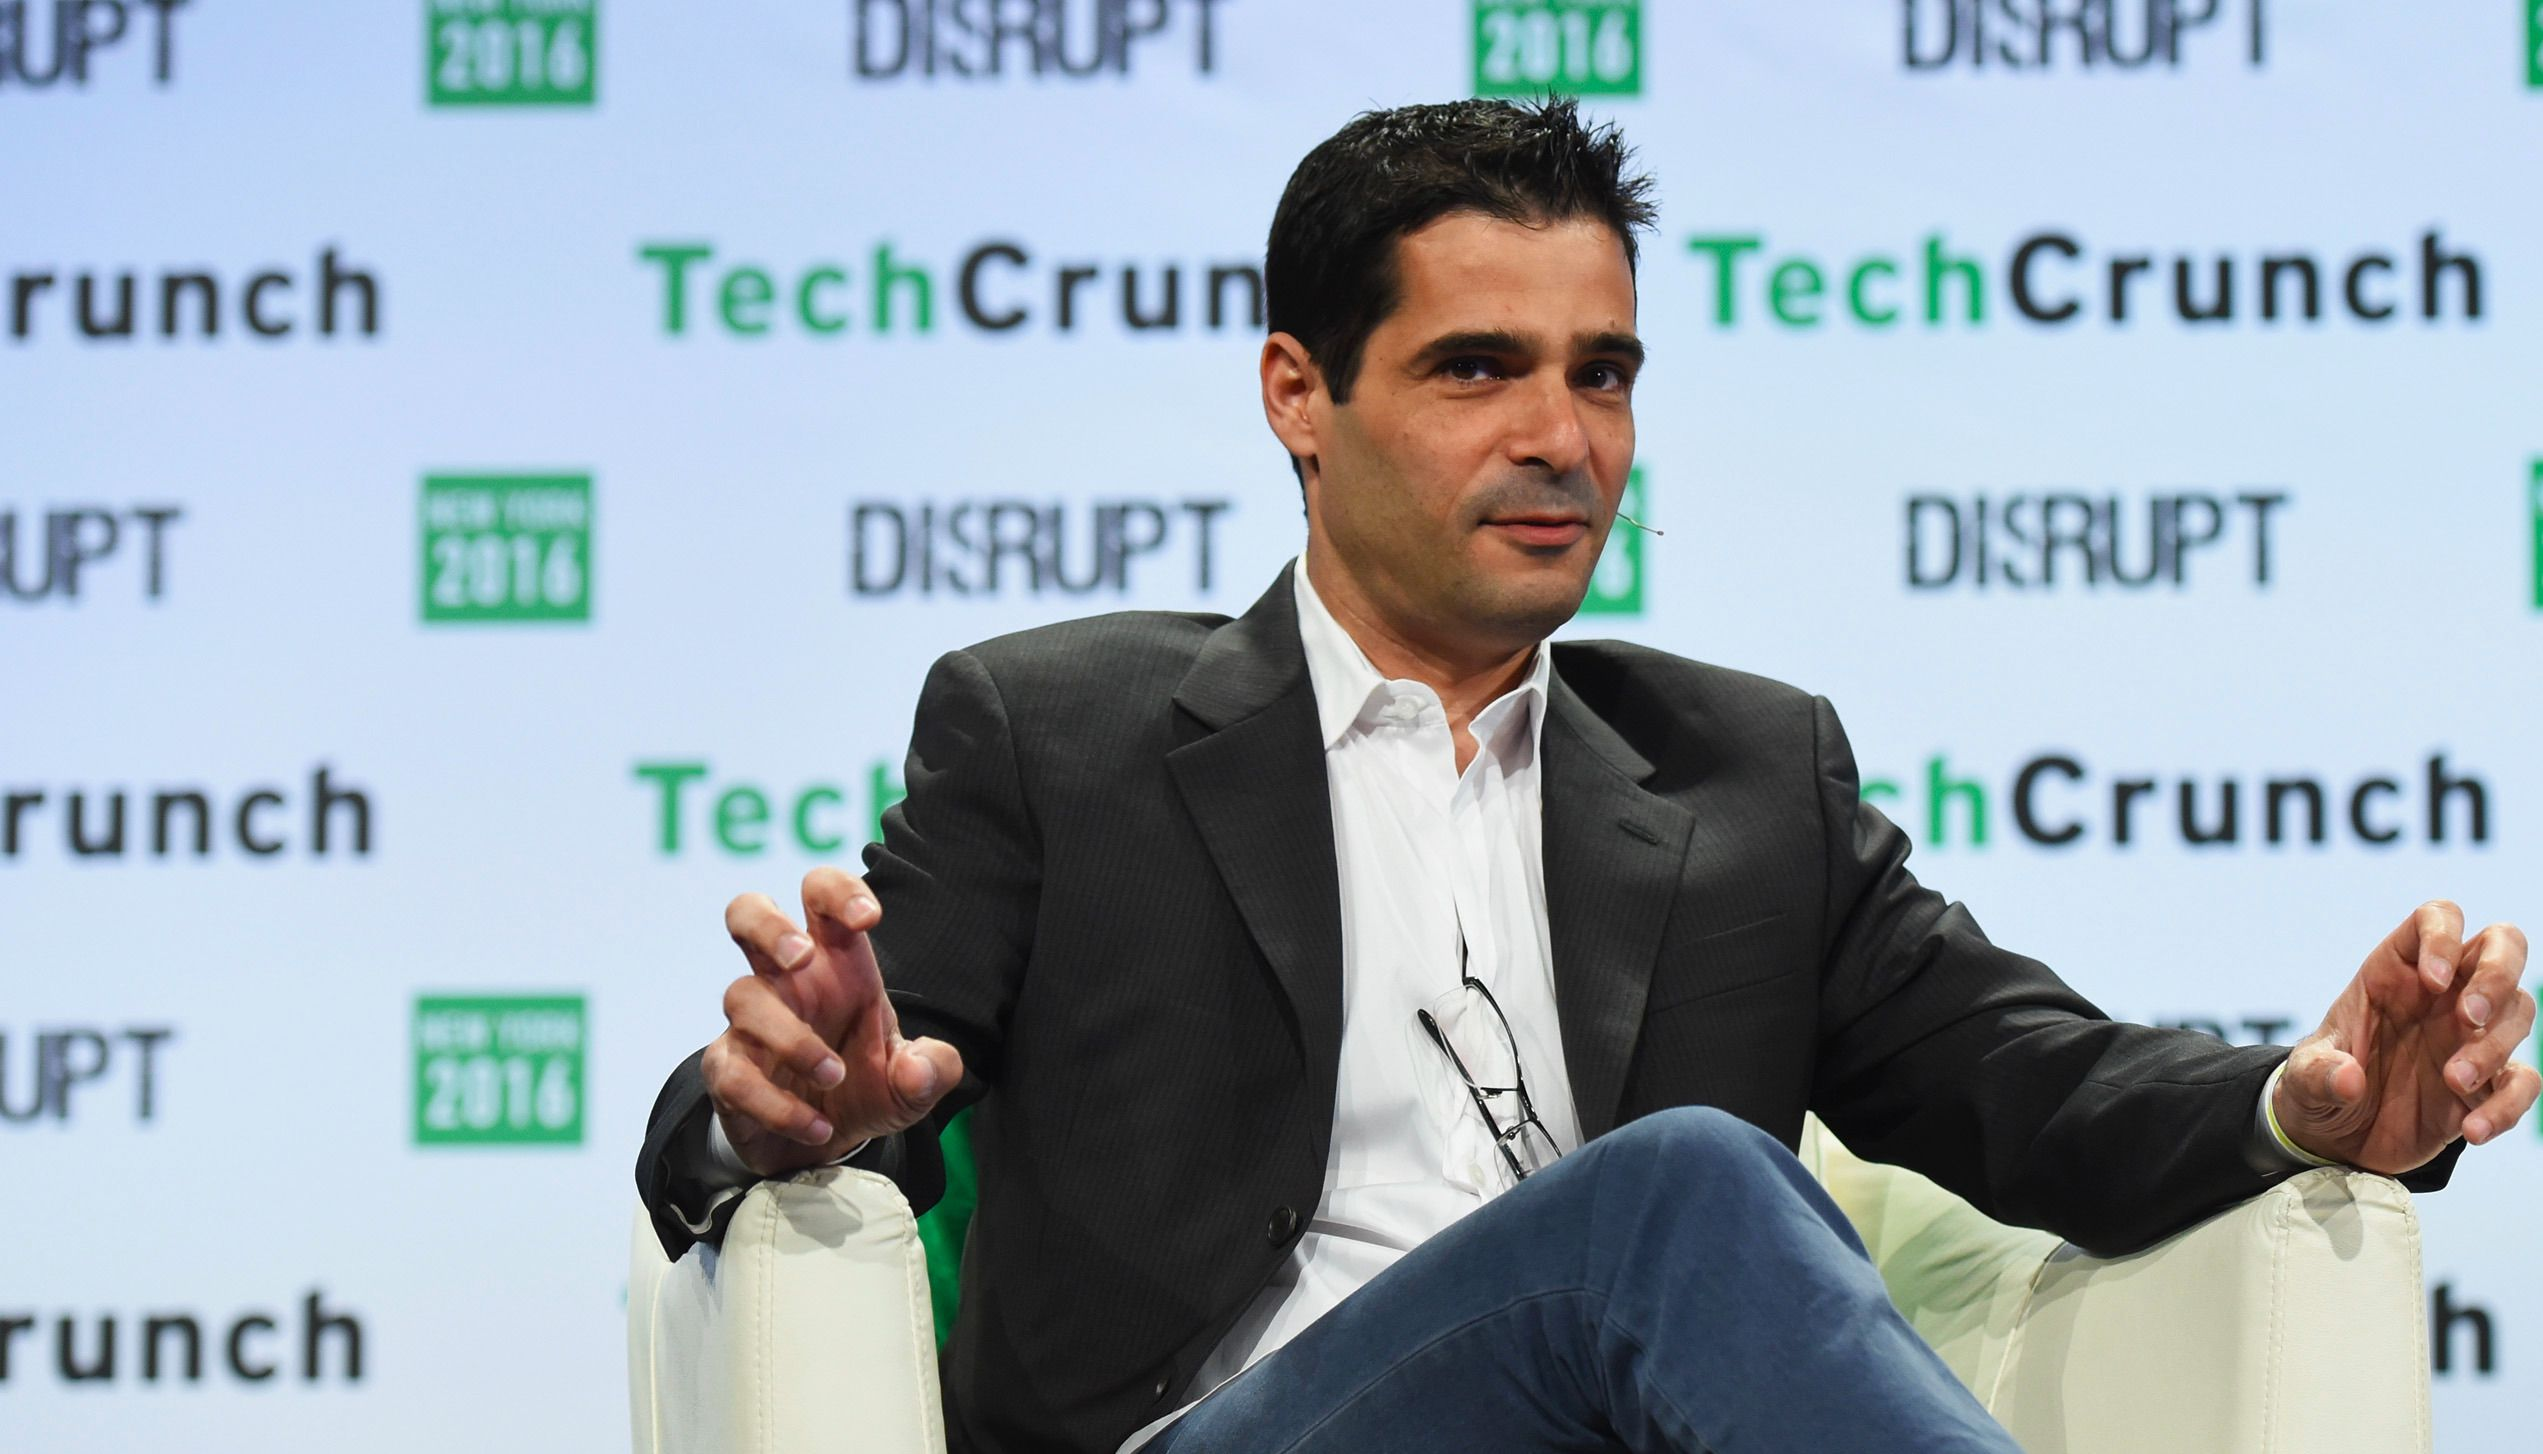 Talmon Marco speaks during TechCrunch Disrupt NY 2016 at Brooklyn Cruise Terminal on May 10, 2016 in New York City.